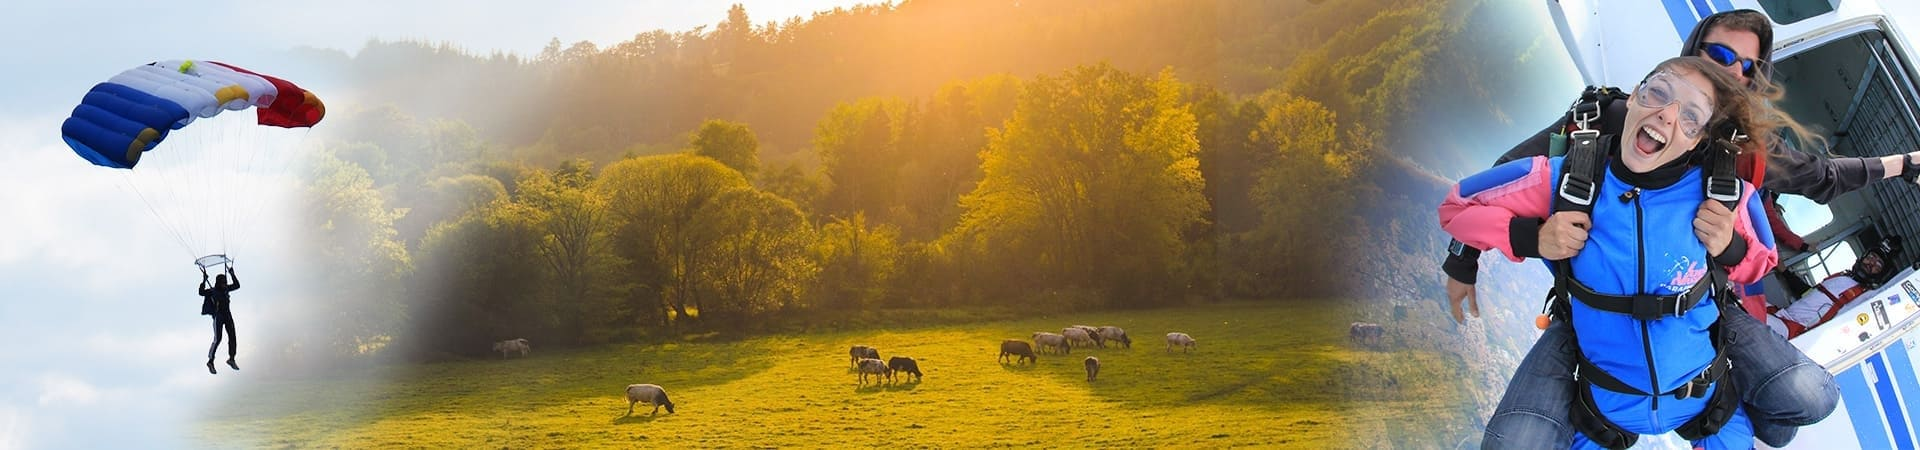 Champagne Ardenne-image